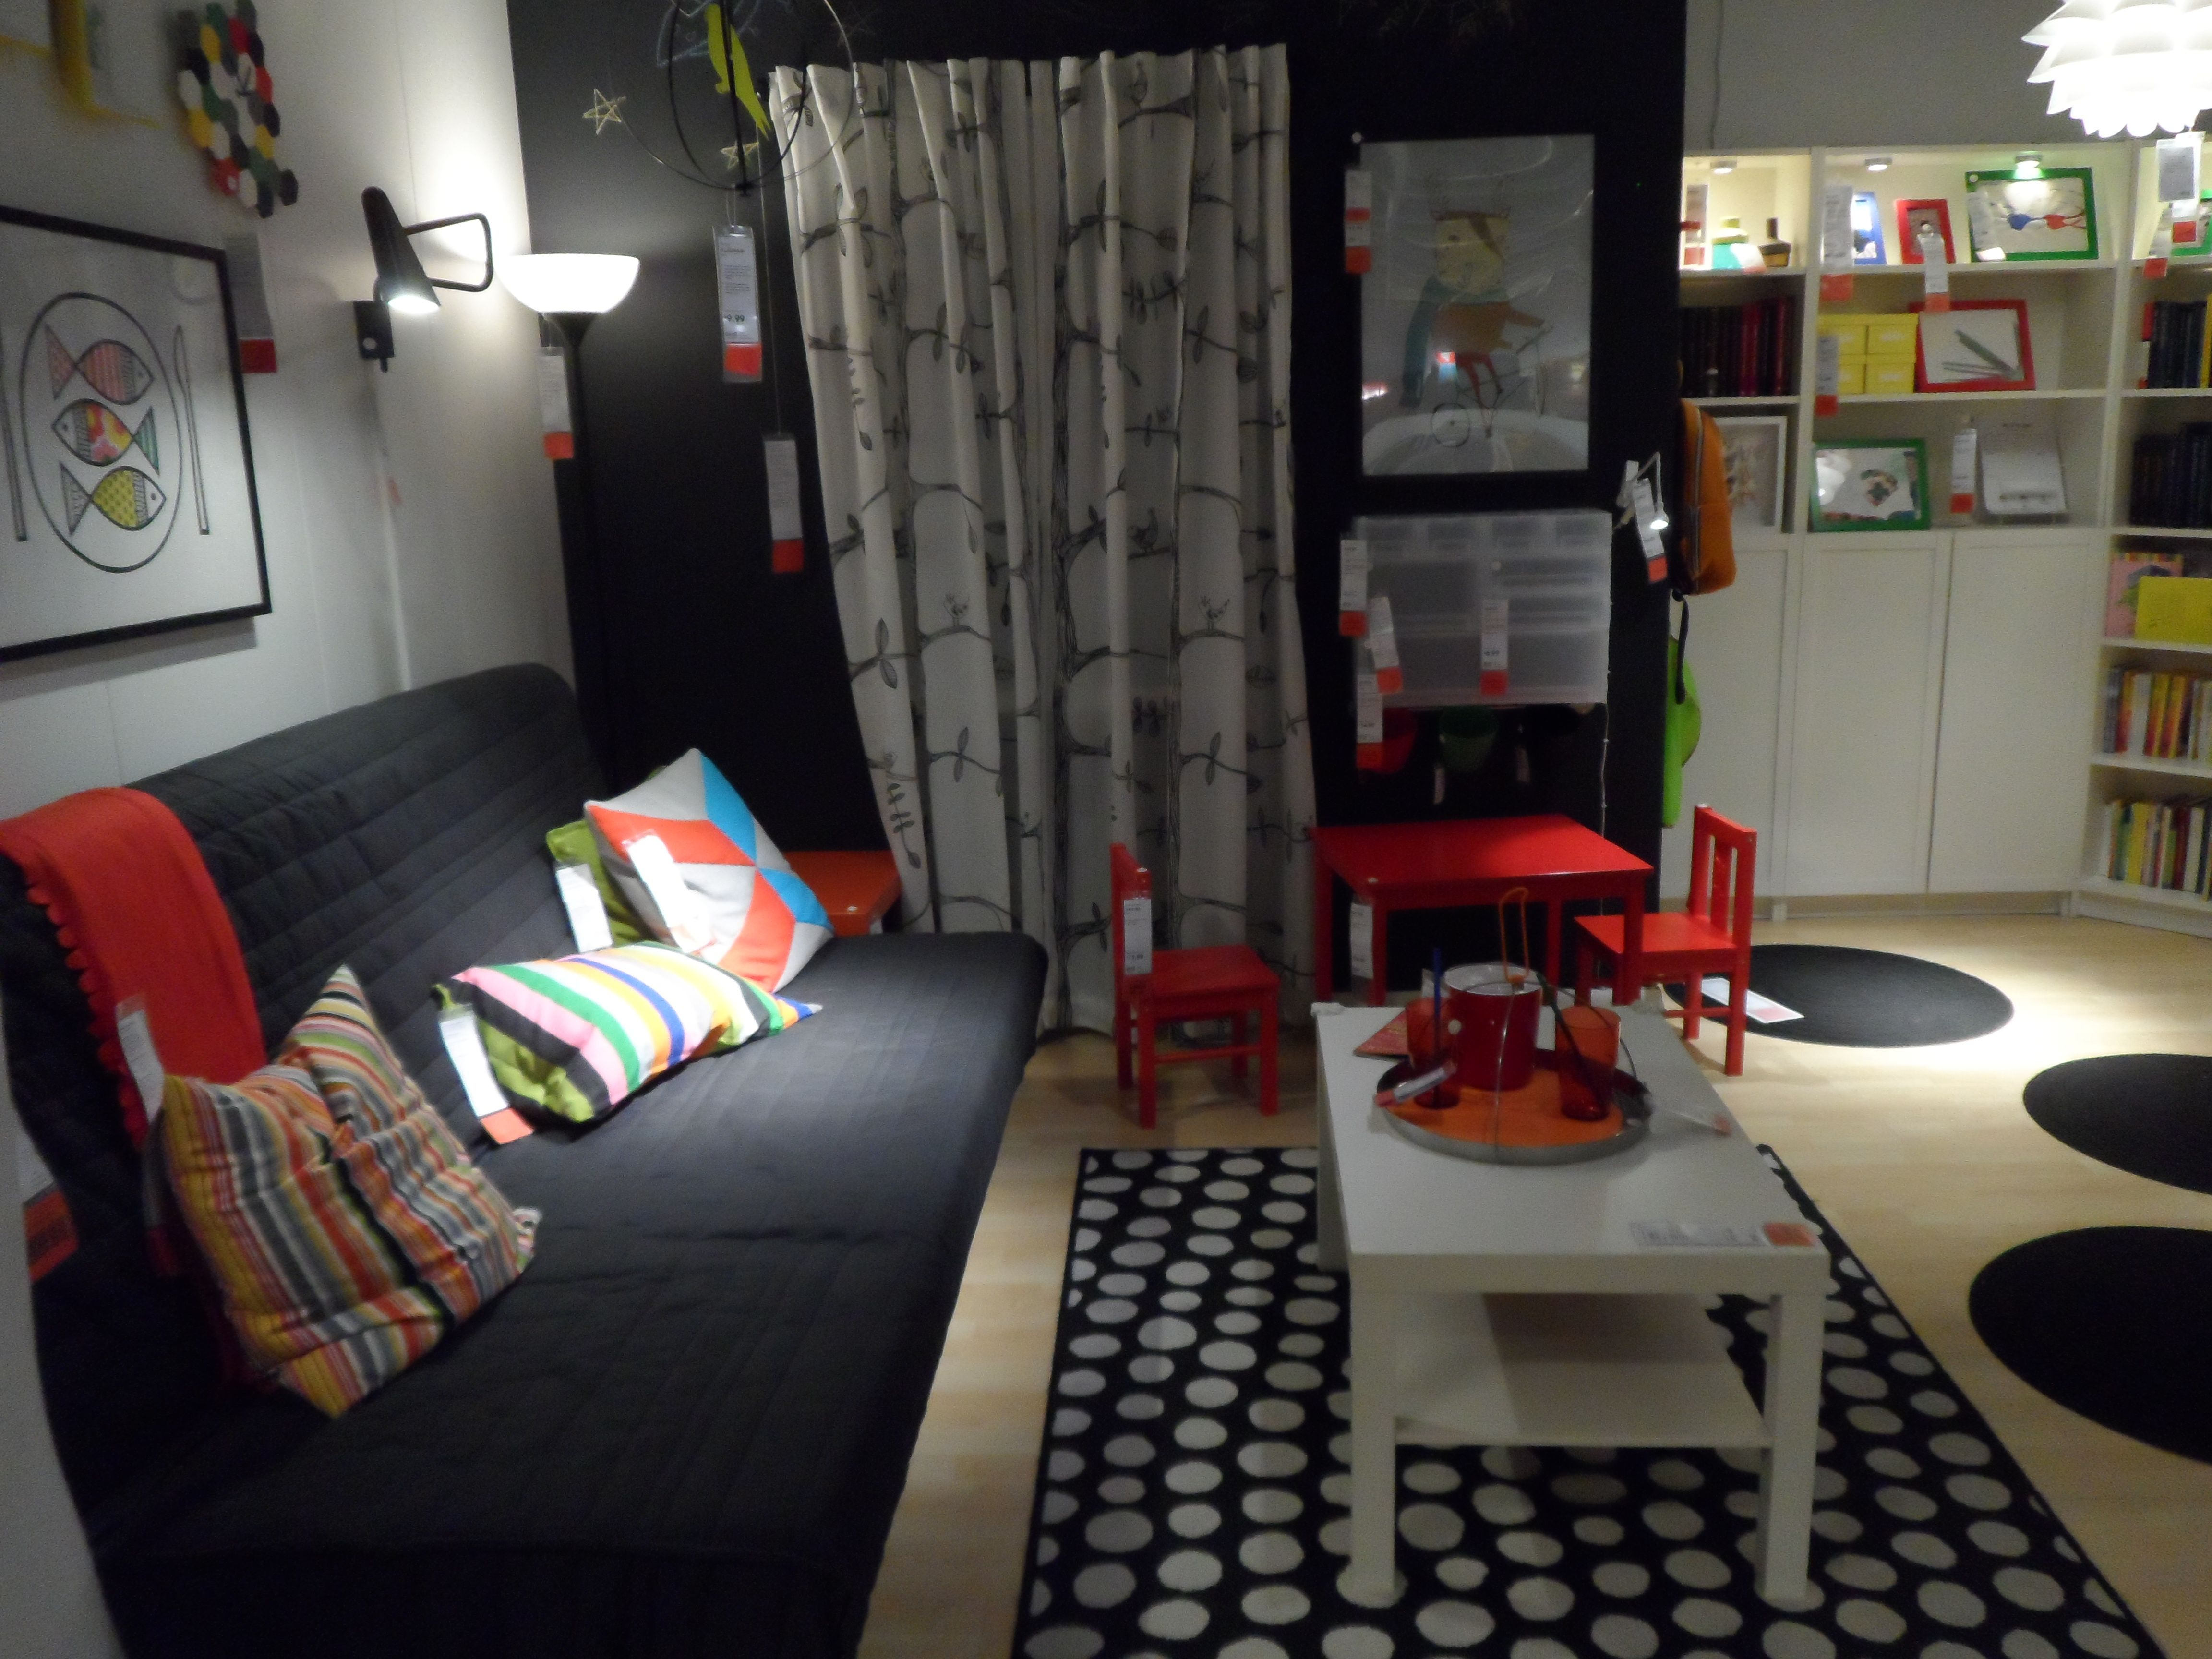 Playroom Living Room Ikea Showroom Playroom Or Living Family Room Shopping